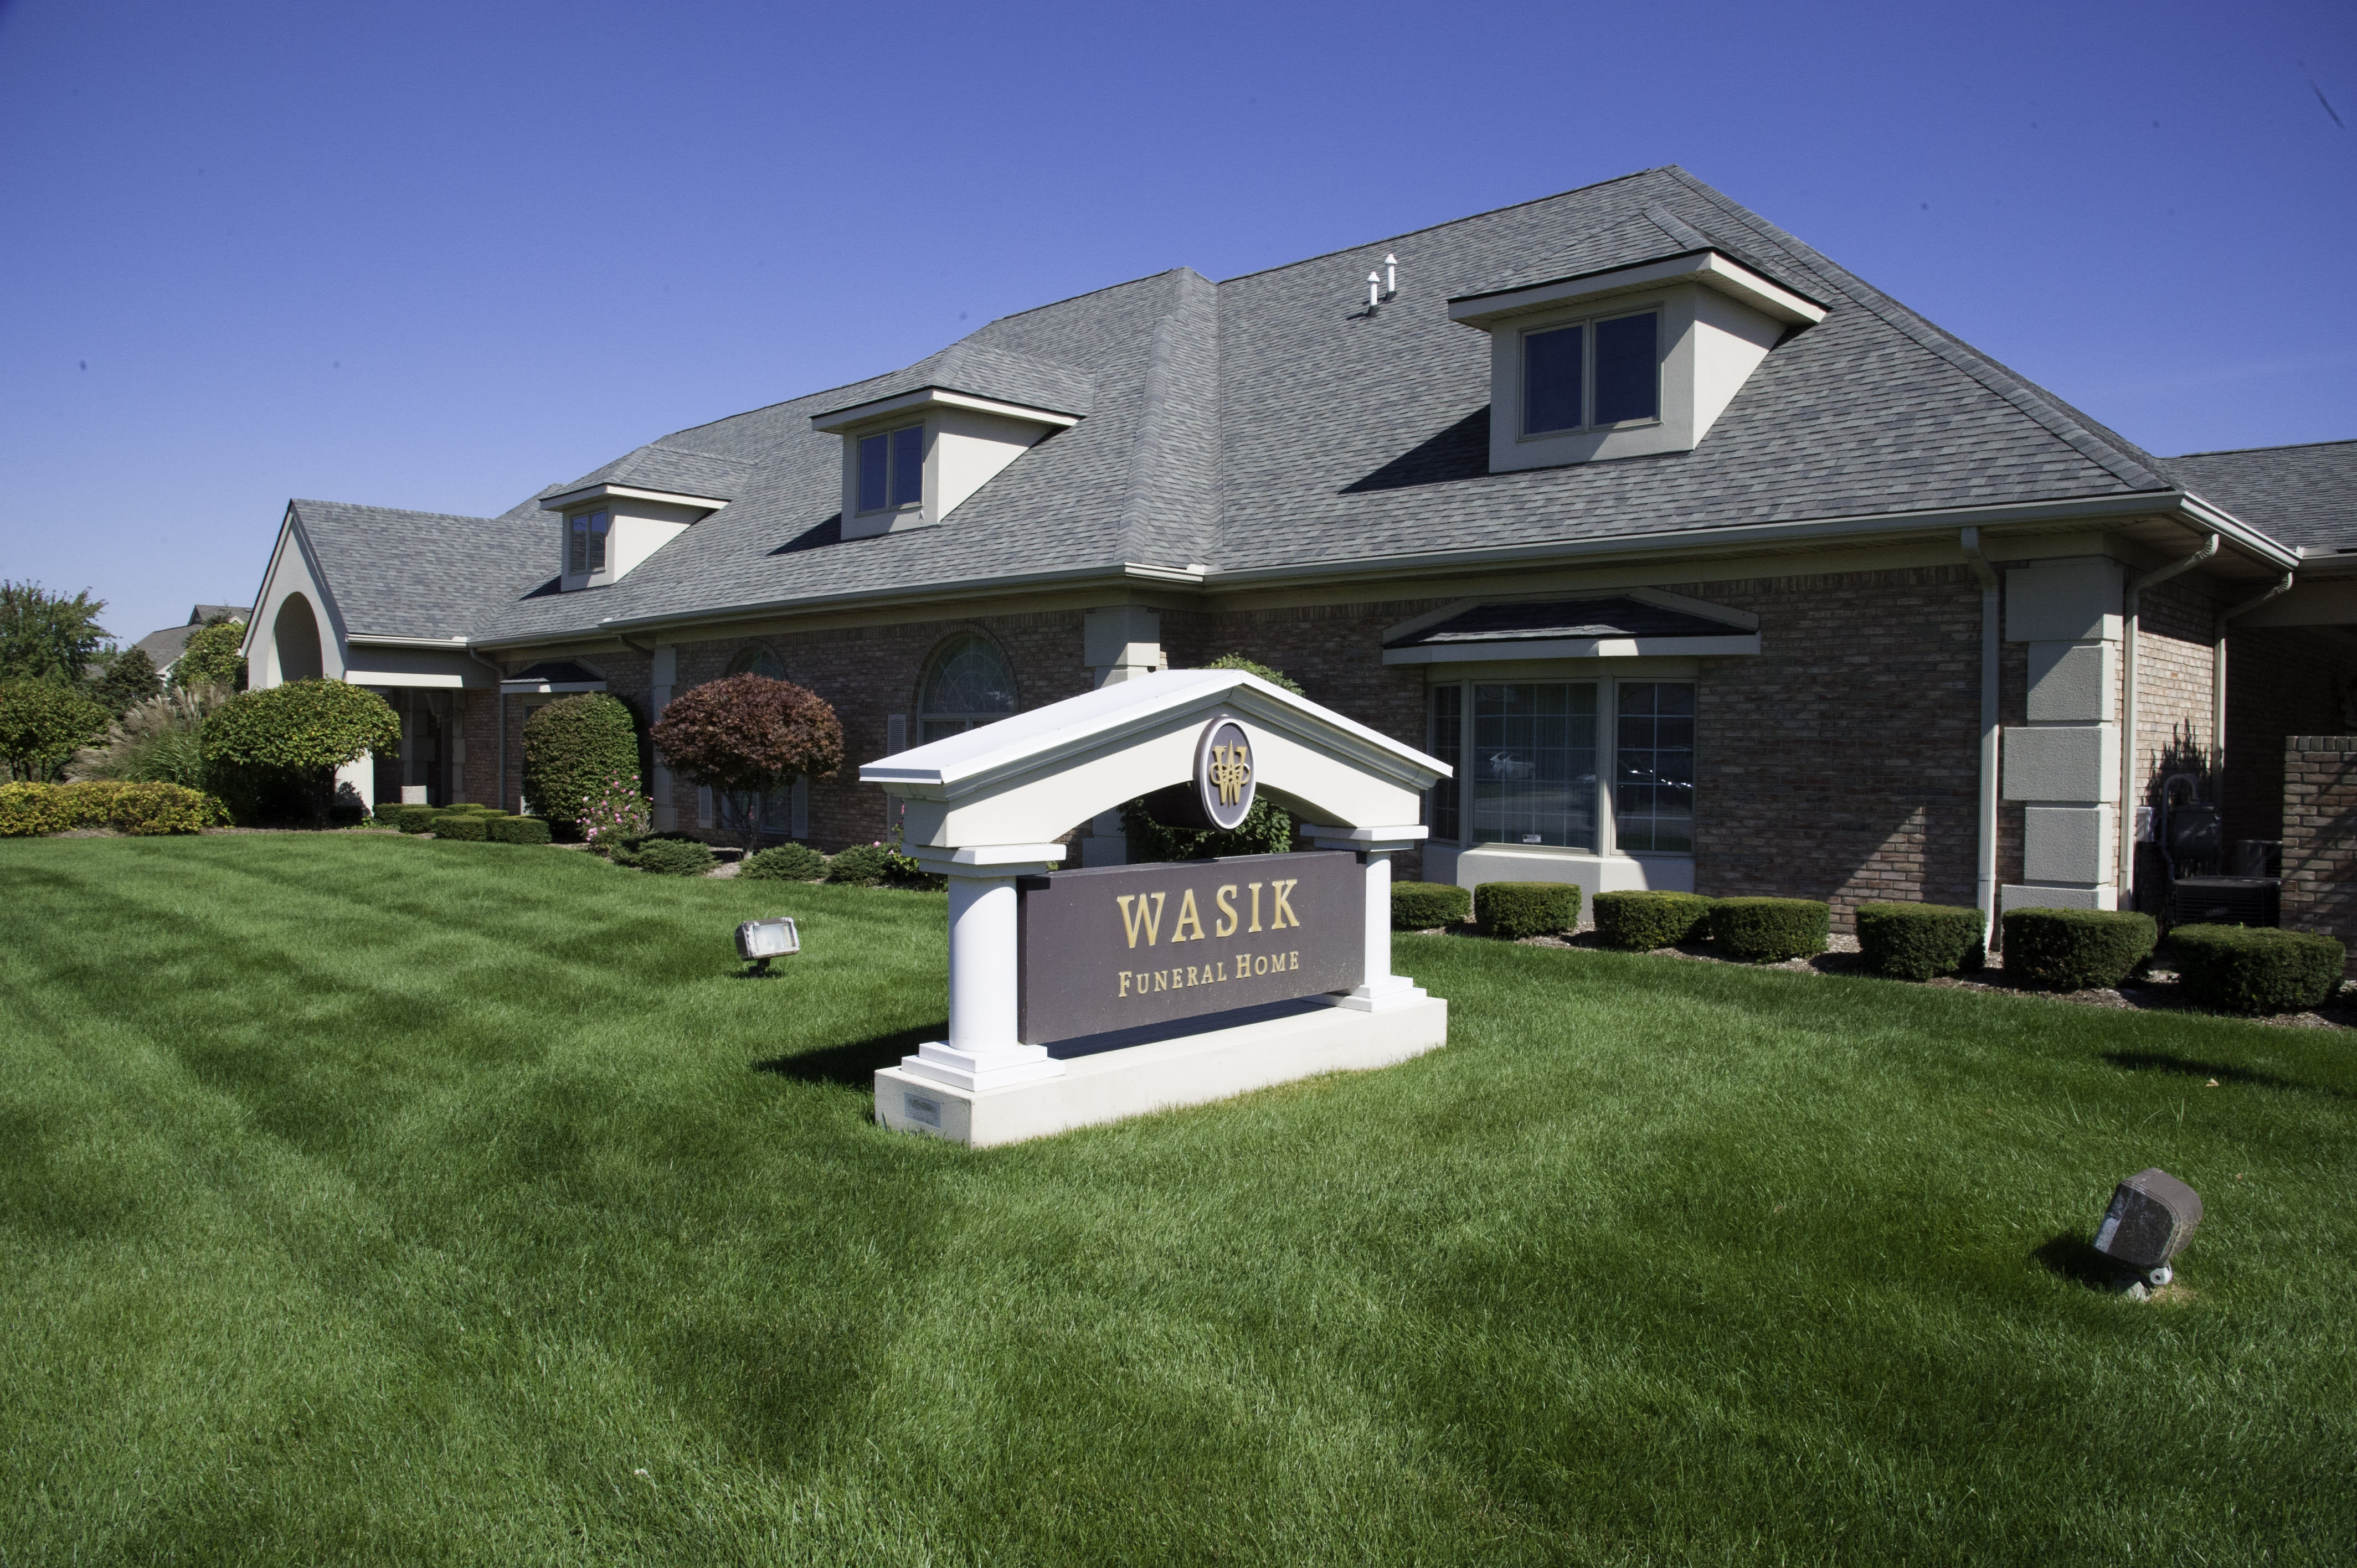 Wasik Funeral Home - Shelby Charter Township, MI